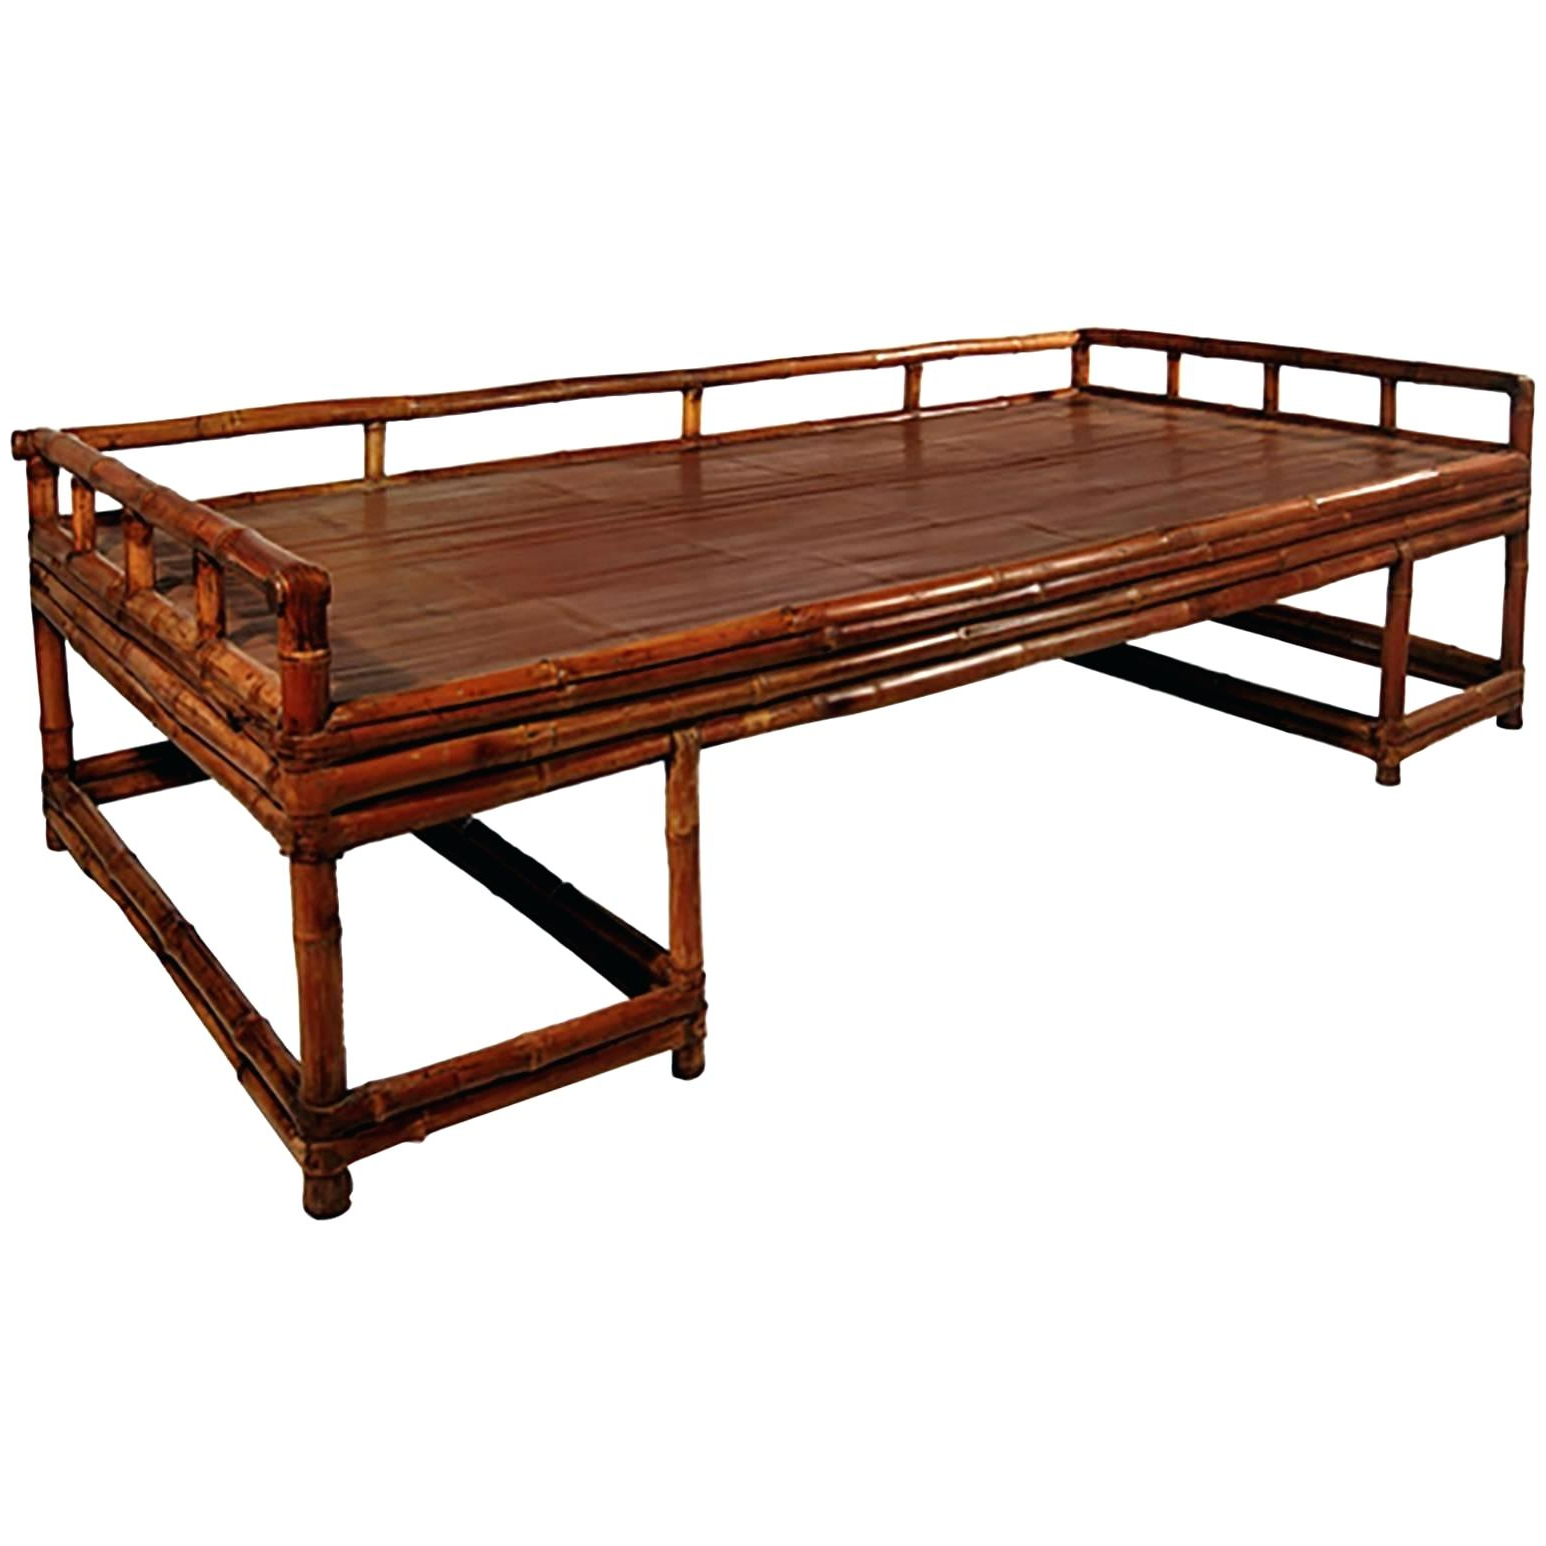 Bamboo Daybed Bamboo Daybed With Canopy Bamboo Daybed With For Best And Newest Bamboo Daybeds With Canopy (View 22 of 25)